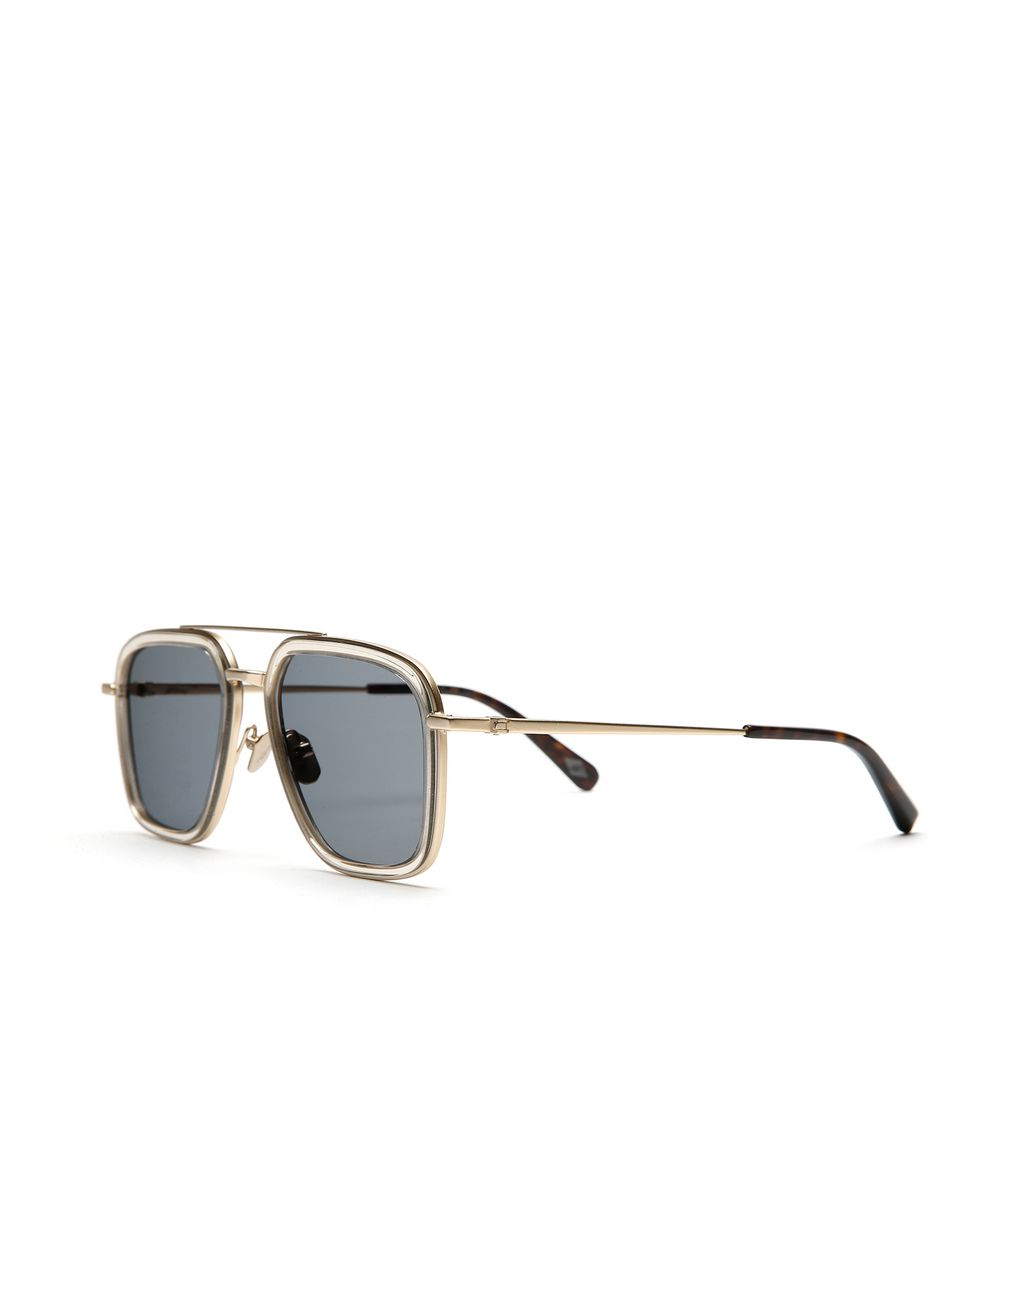 BRIONI Transparent Sand Geometric Shape Sunglasses with Green Lenses  Sunglasses Man r